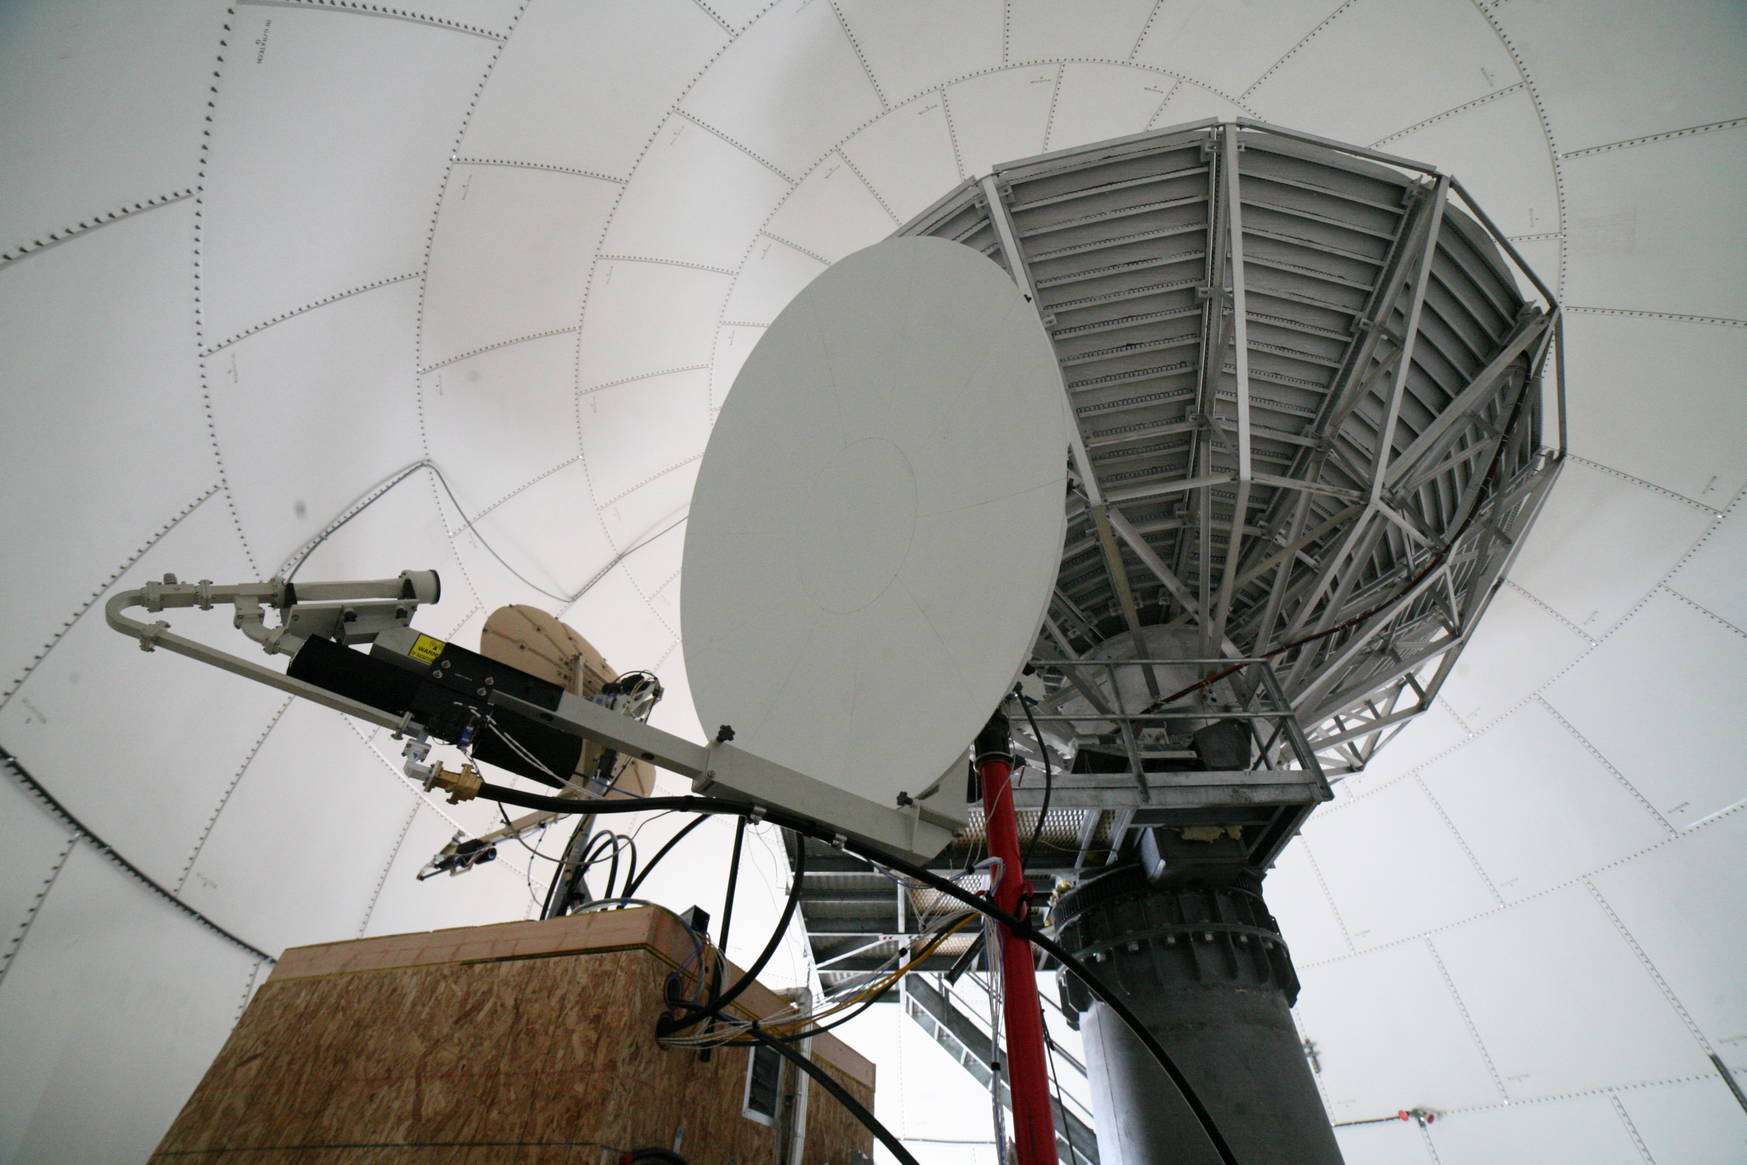 The Skynet and DSCS antennae (left), and the out-of-order 9m dish for future use (top right).